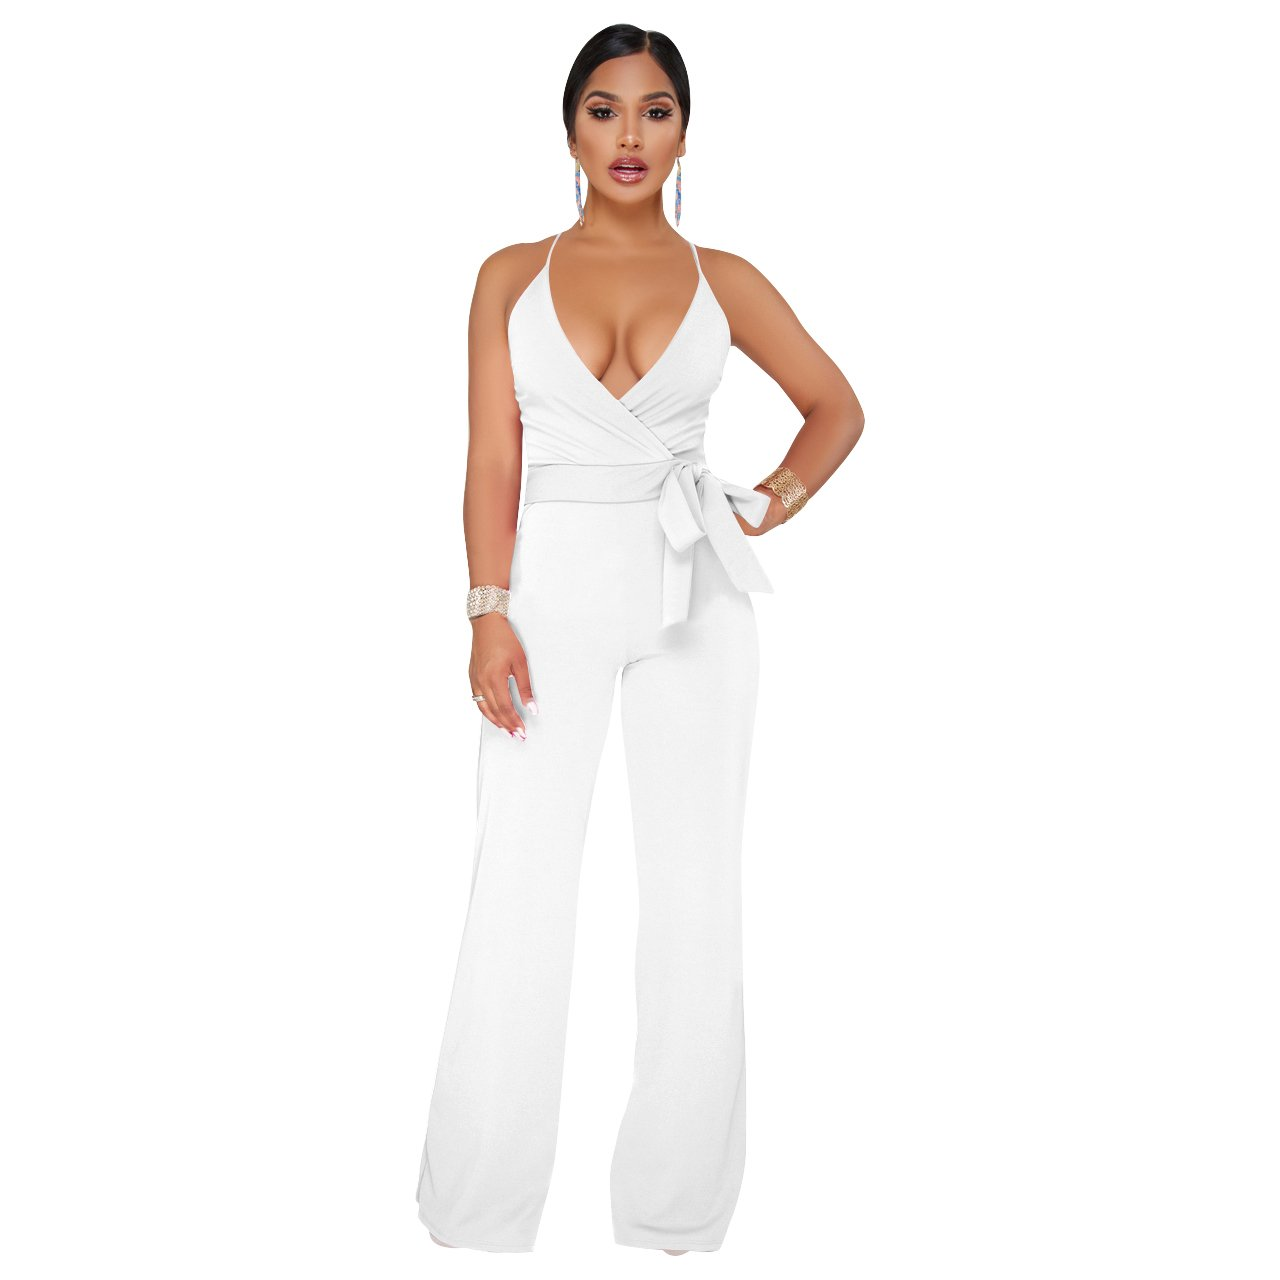 4f5972d2ee81 Amazon.com: Ermonn Women's Wide Leg Jumpsuits Sexy Halter V Neck Sleeveless  Wrap Wasitband Jumpsuit Rompers: Clothing